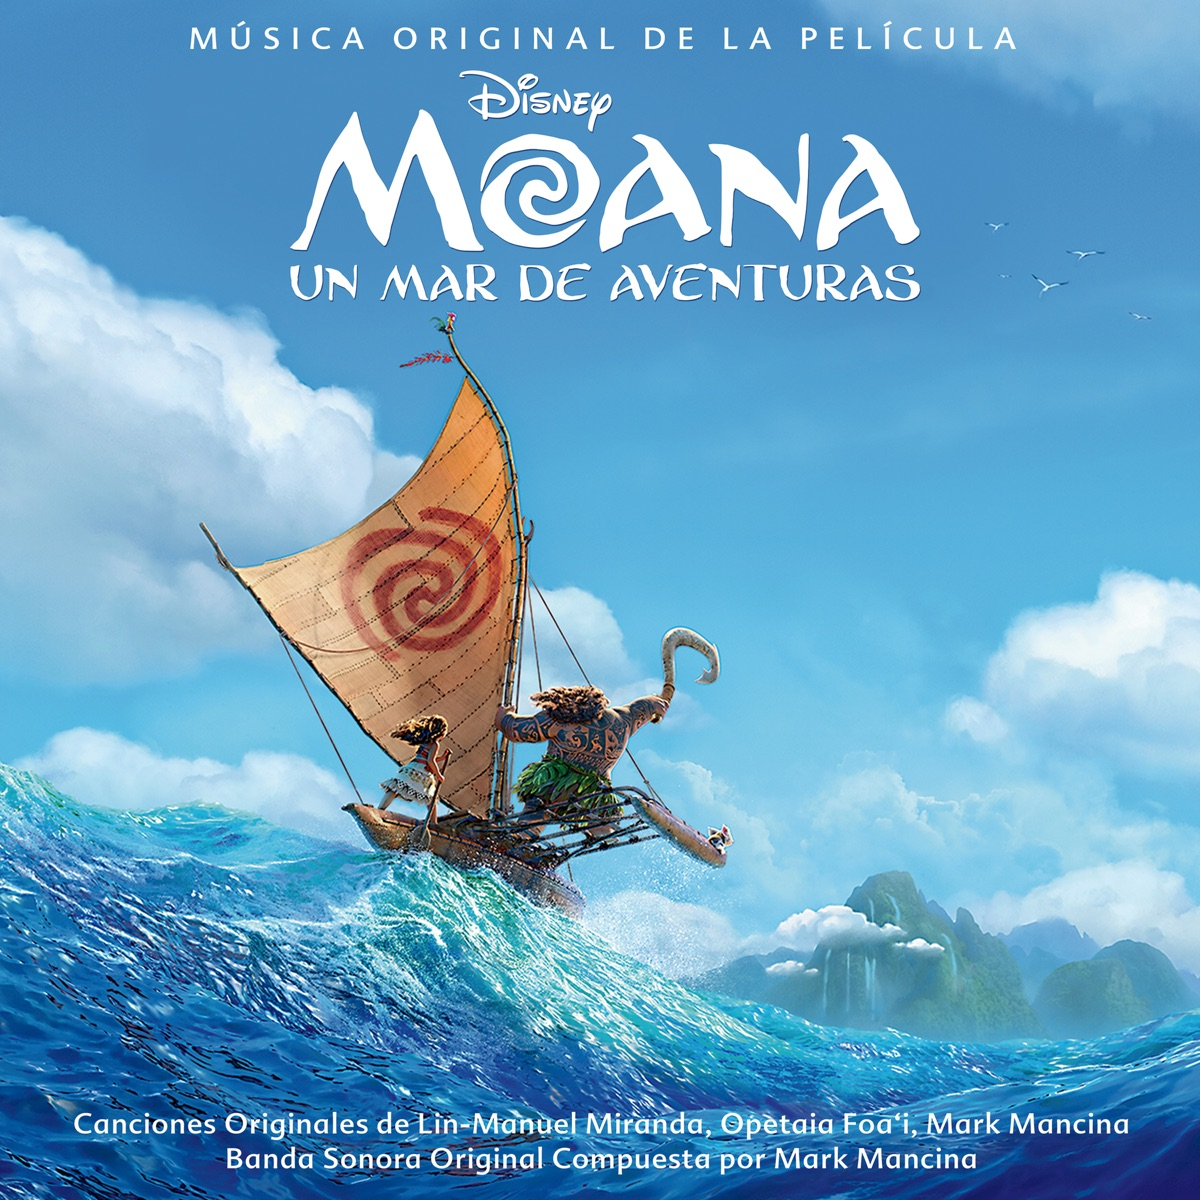 Moana Un mar de aventuras Sonora Original en Español Various Artists CD cover